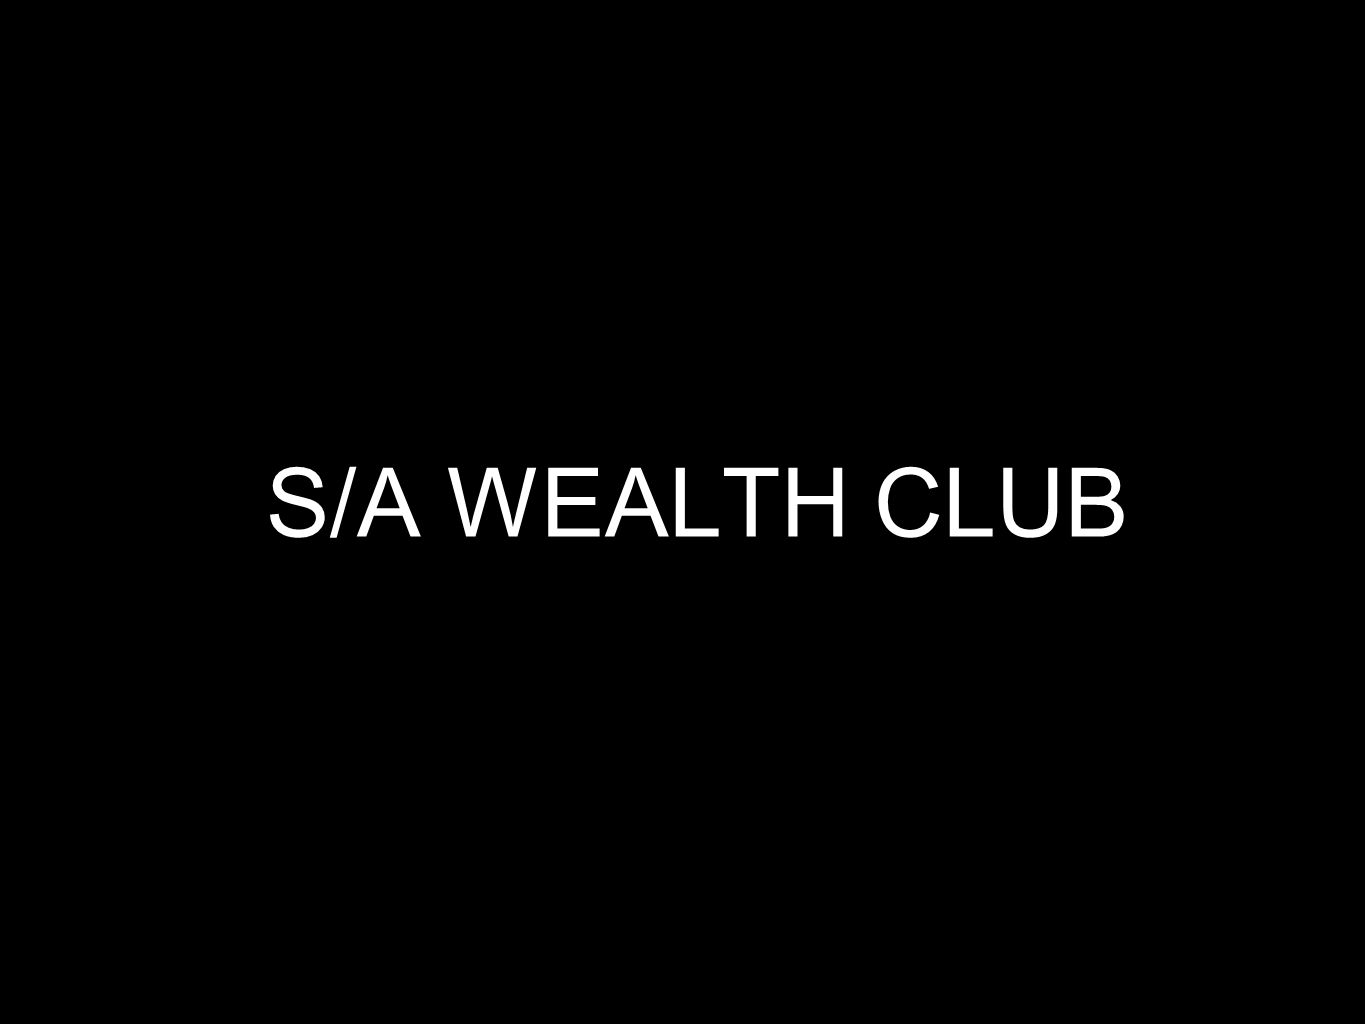 S/A WEALTH CLUB